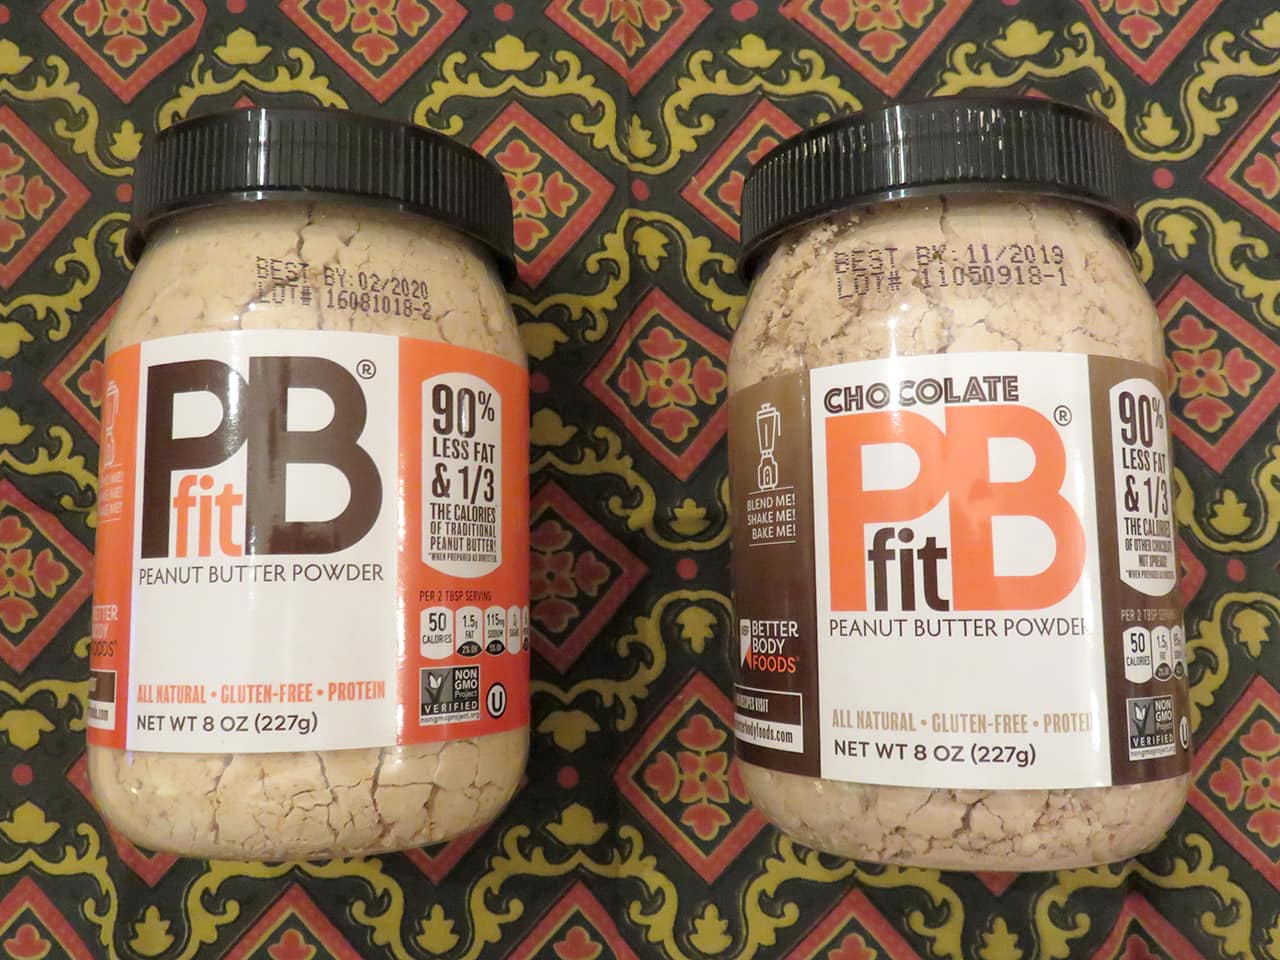 Upgrade Your Peanut Butter with Healthy Alternative PBfit